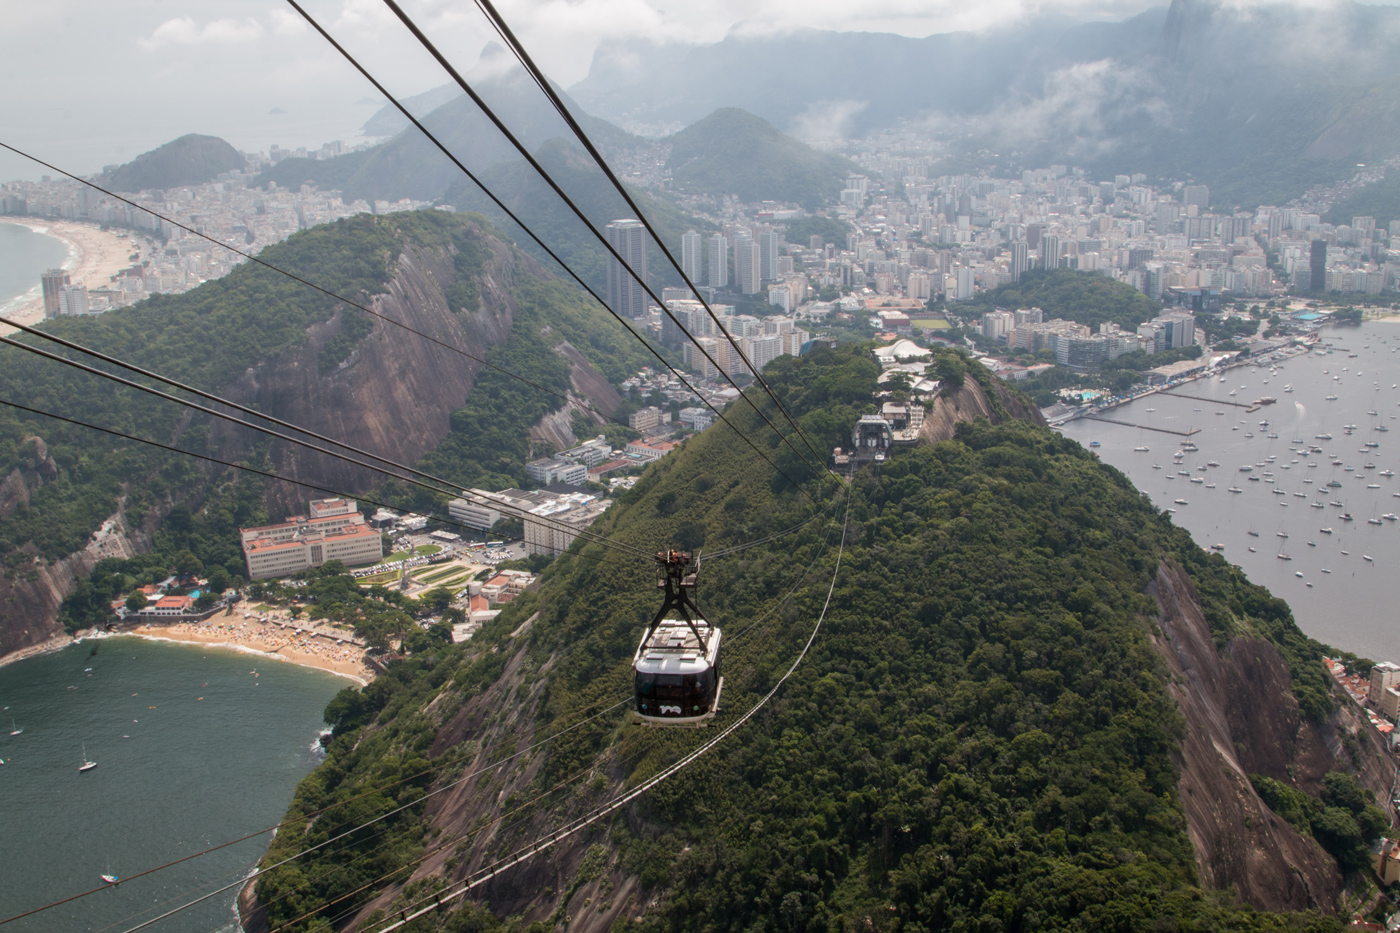 Cable car making its way up Sugarloaf Mountain